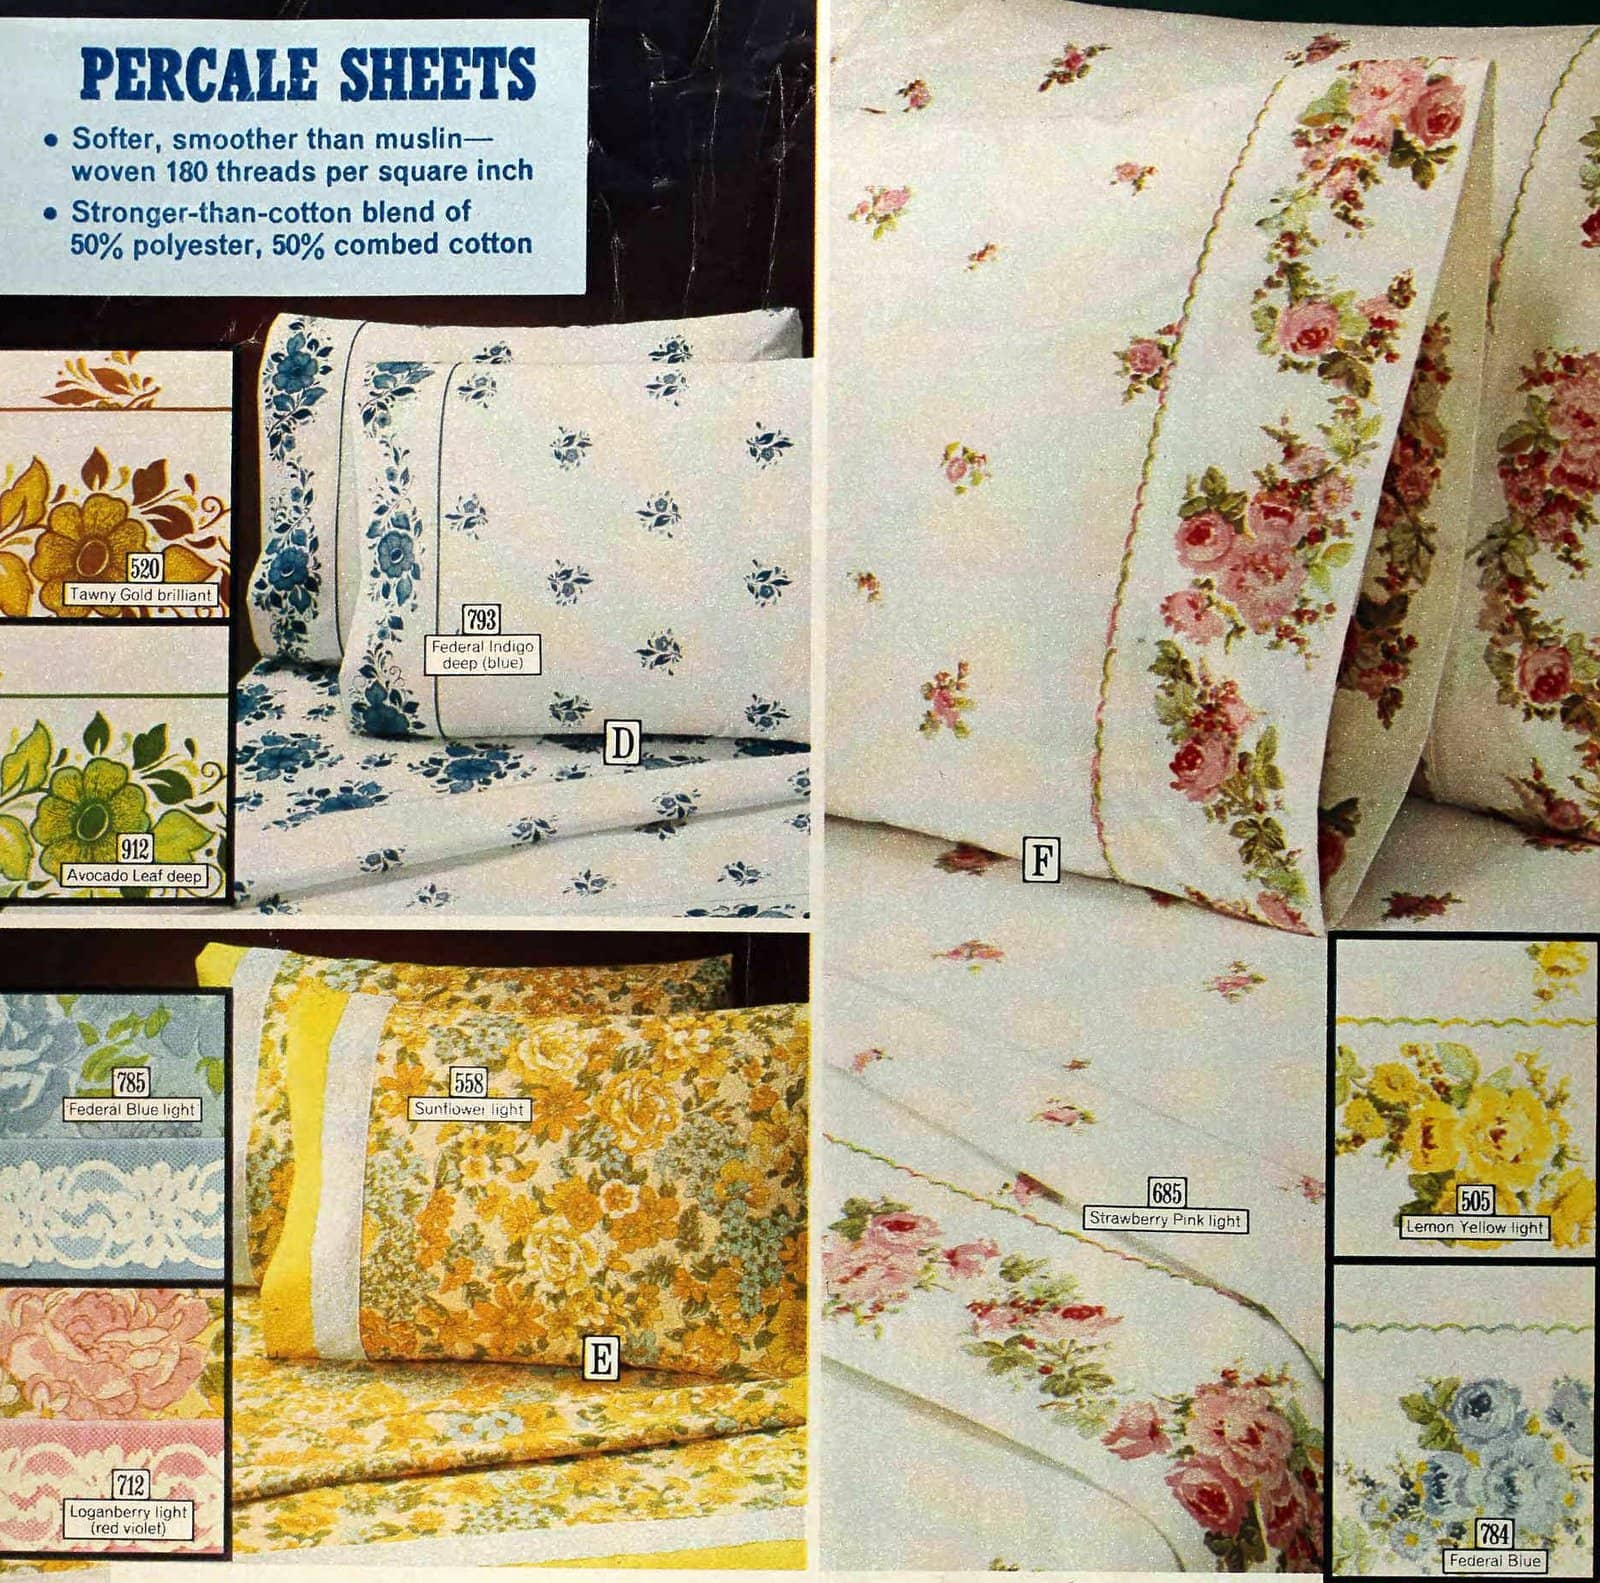 Vintage 1970s percale sheets with classic floral designs